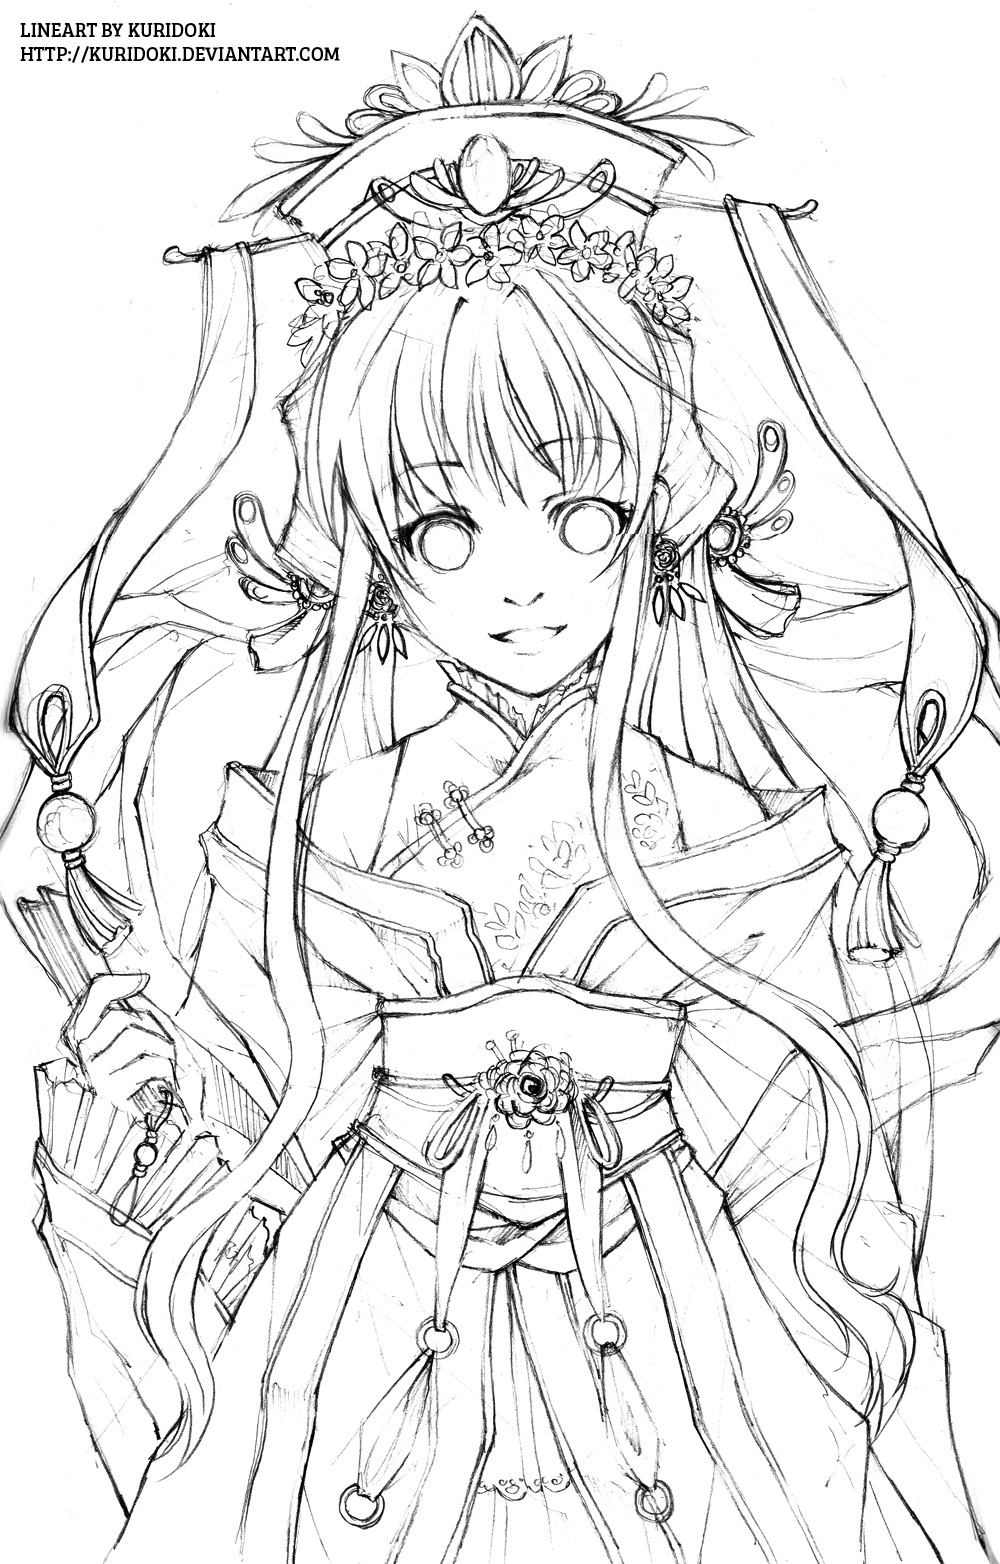 Line Art For Coloring : Hana hime lineart by kuridoki on deviantart